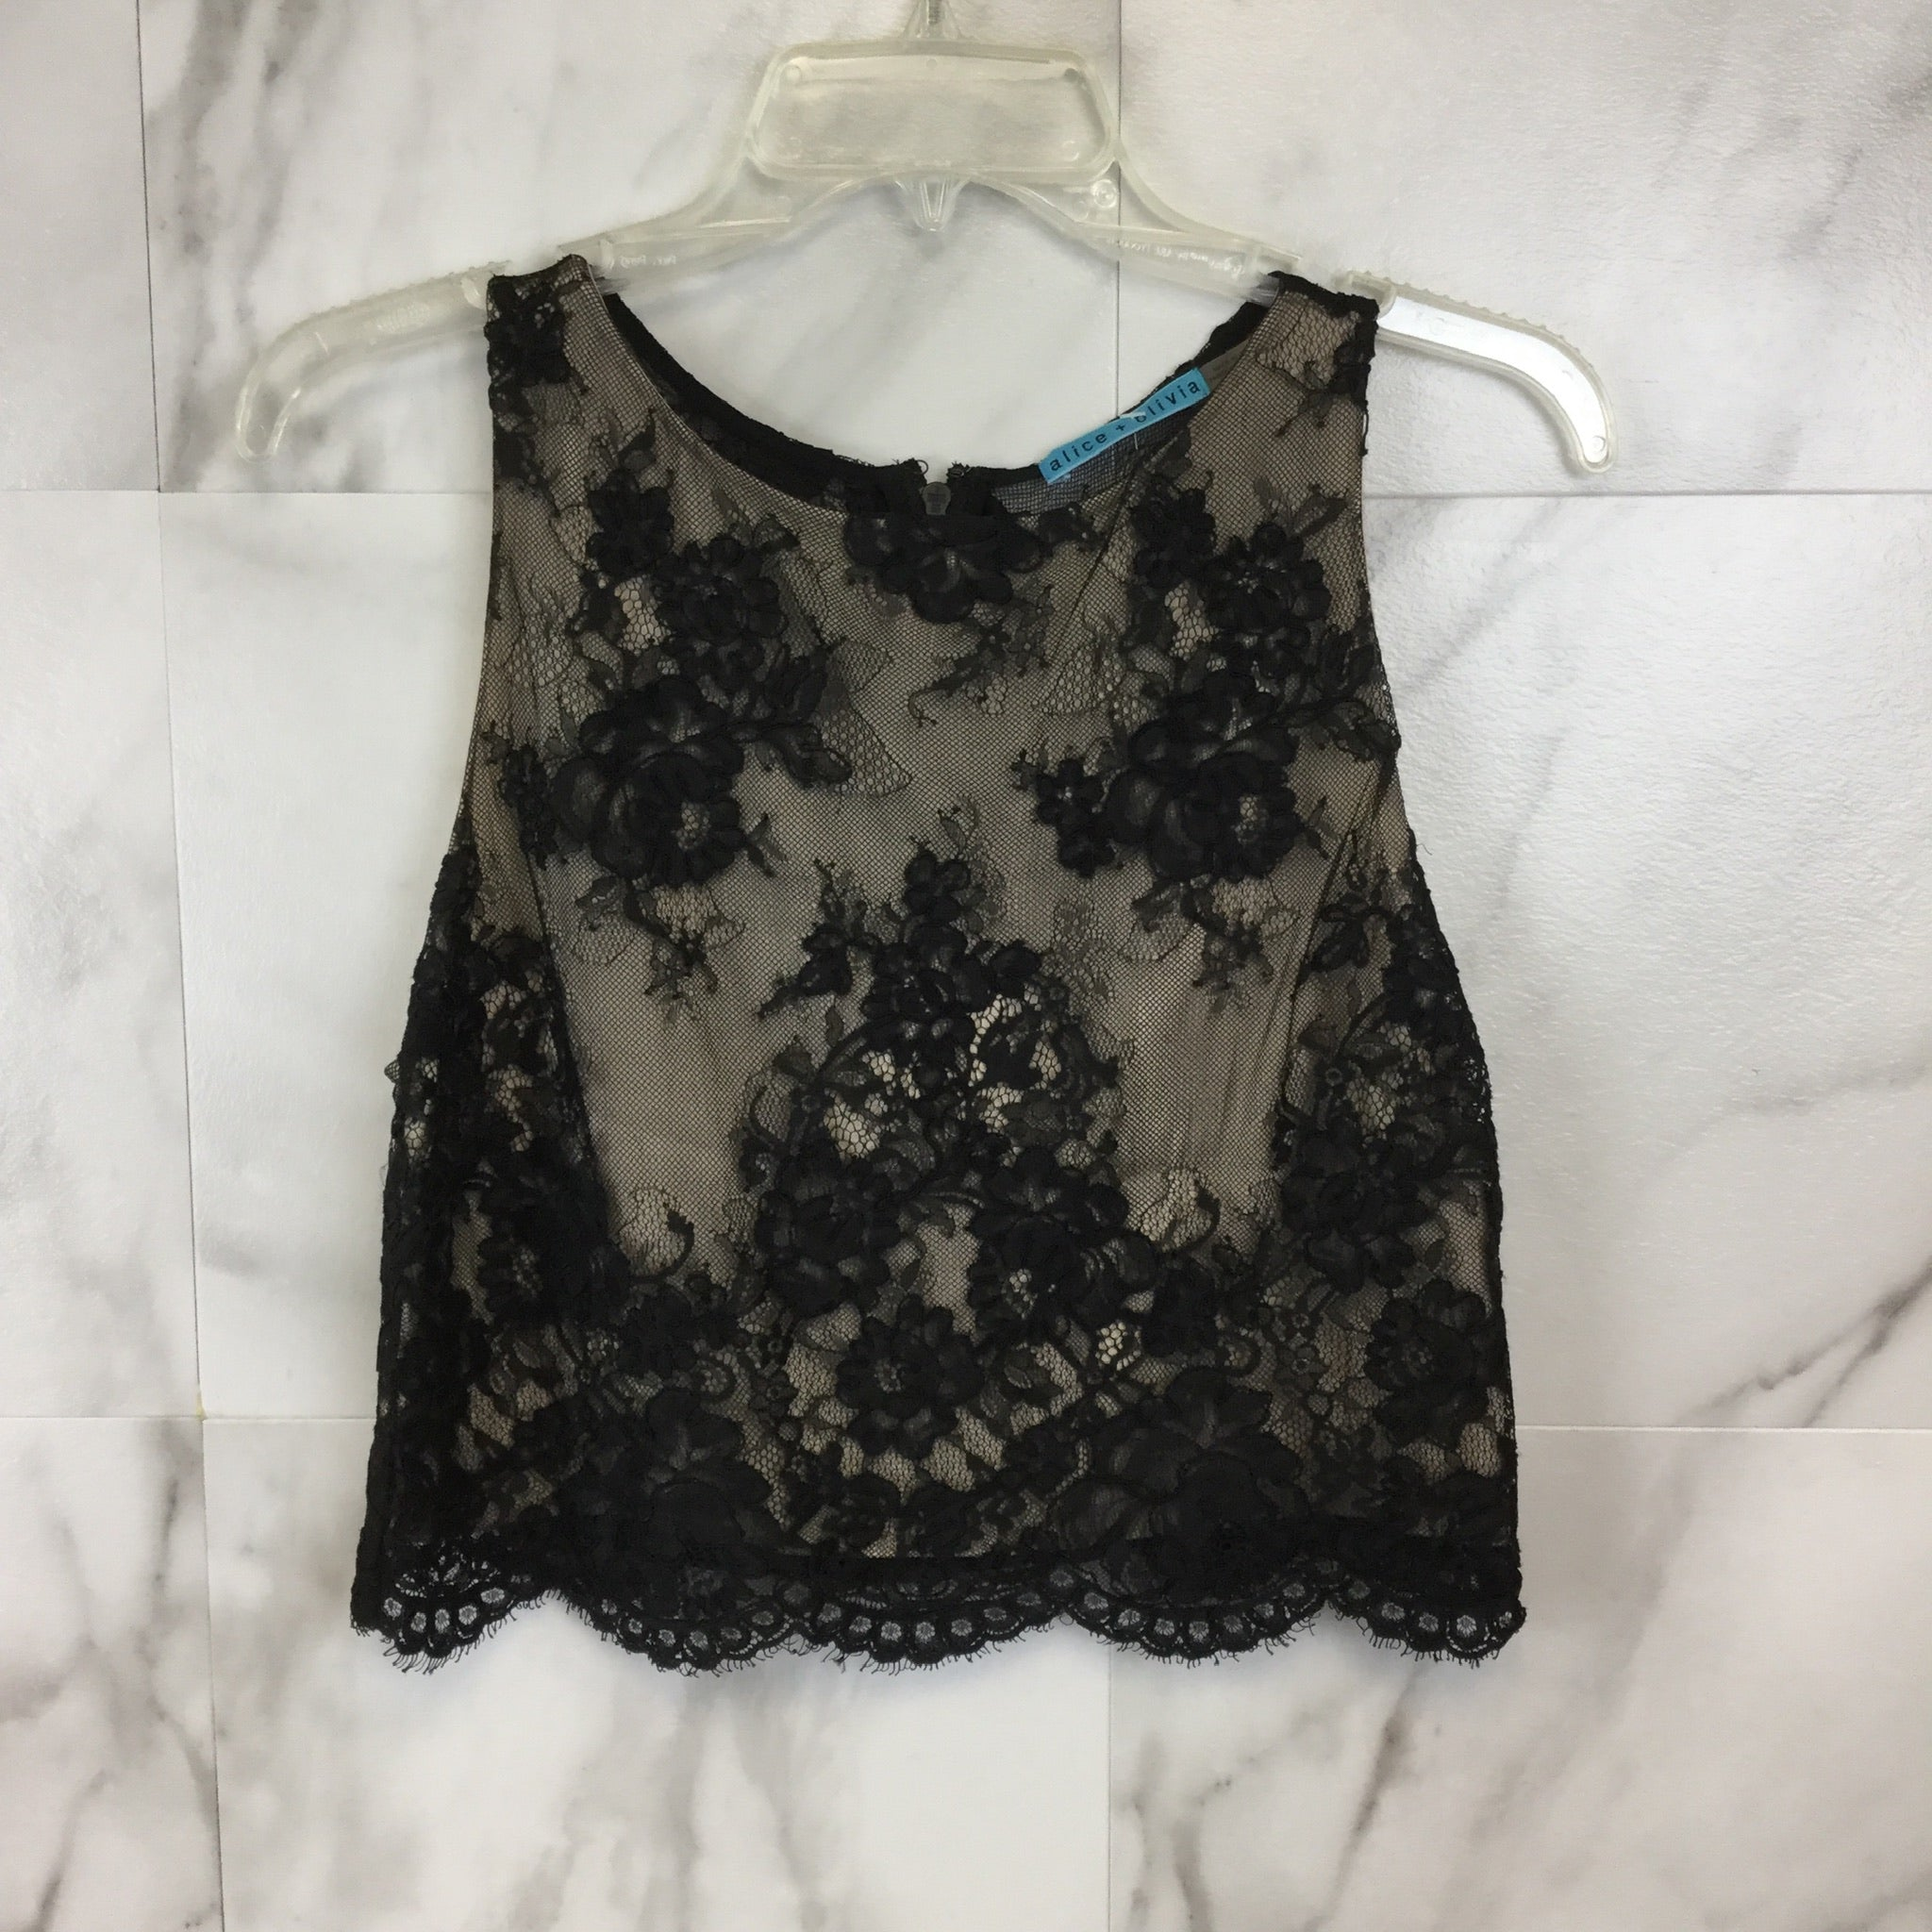 Alice + Olivia Lace Crop Top - Size S